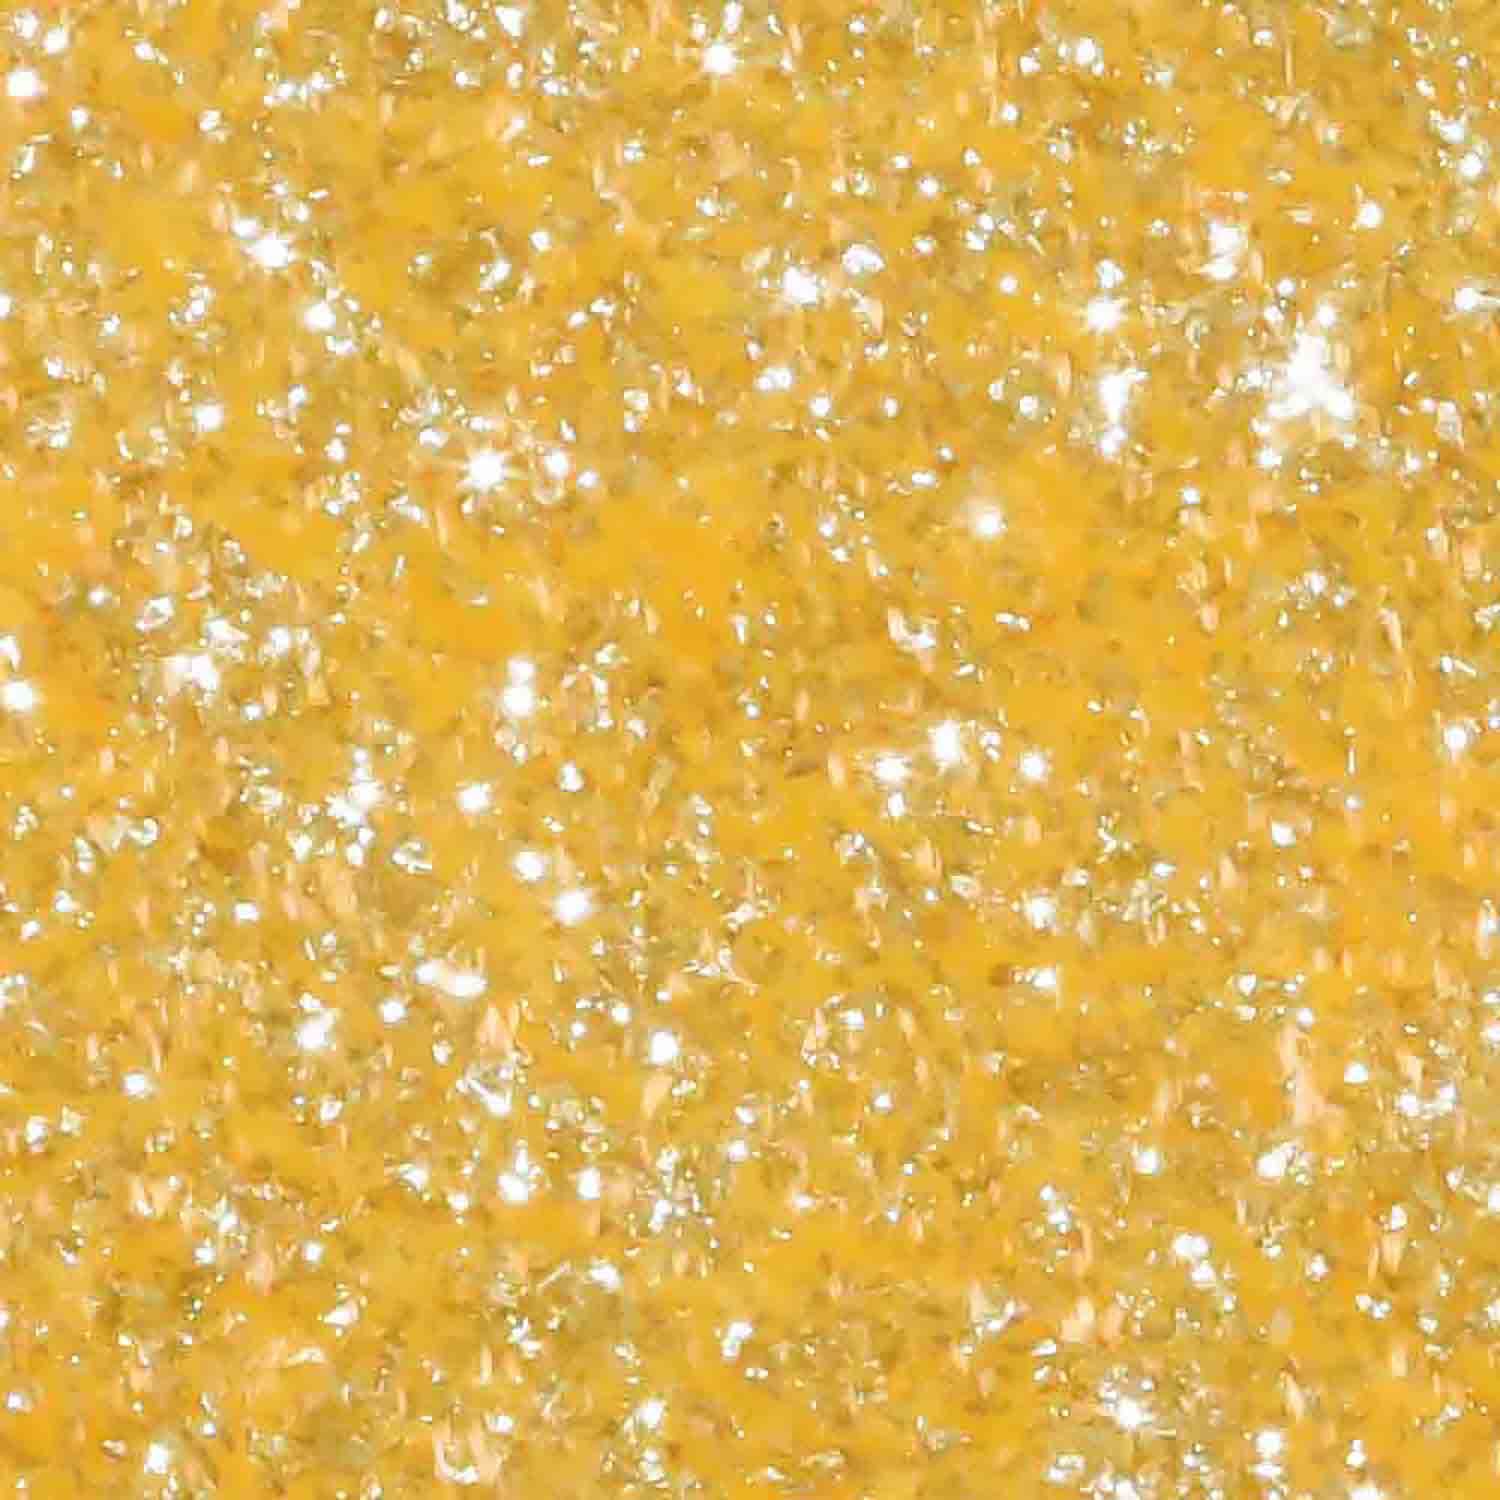 Sunflower Edible Jewel Dust® Glitter